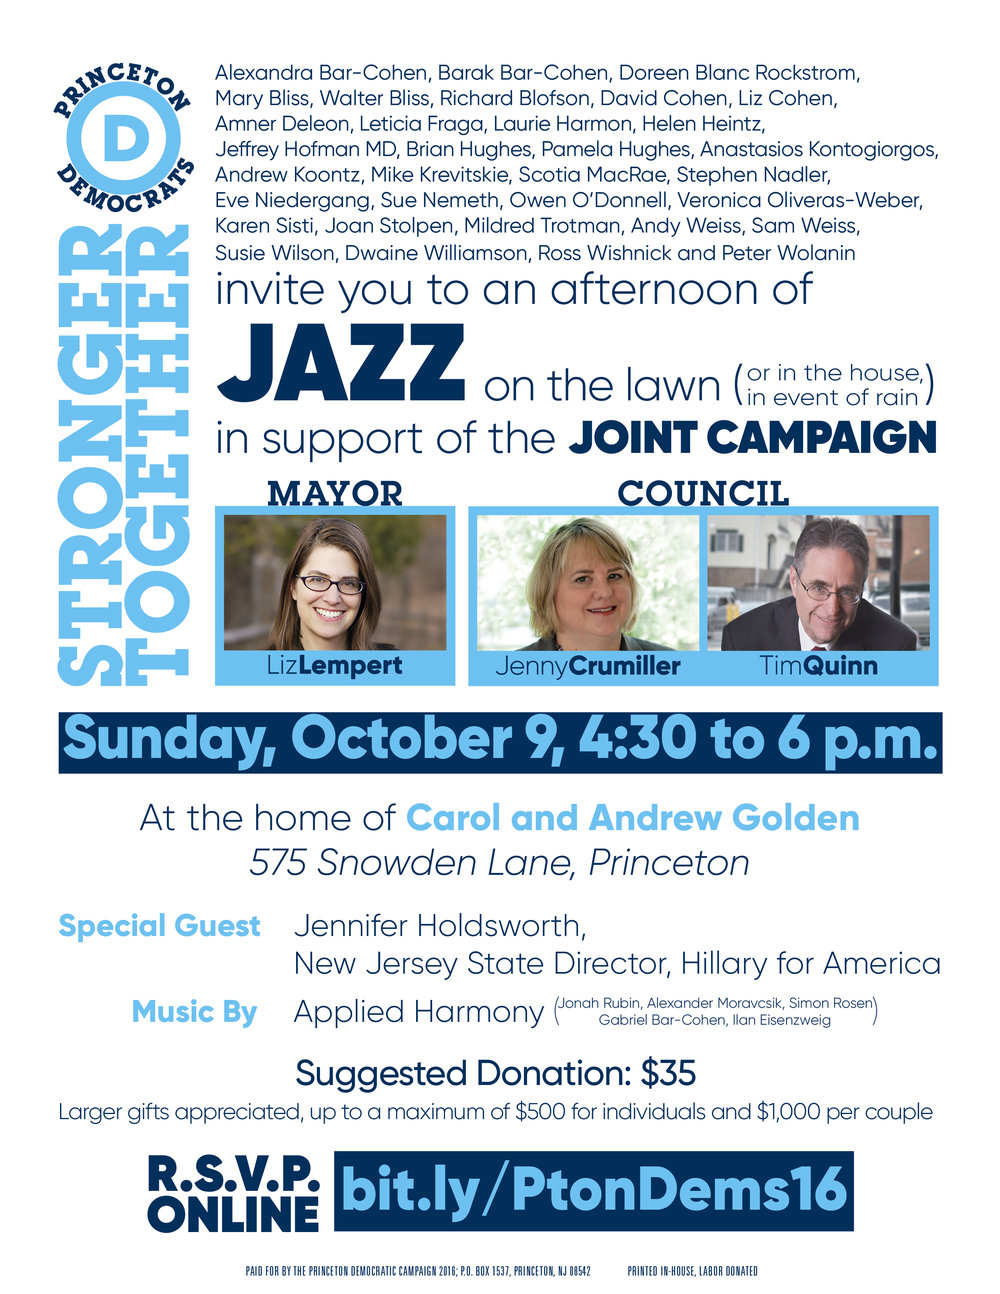 Pay at the door, or mail checks to: Princeton Democratic Campaign 2016: PO Box 1537, Princeton, NJ 08542.